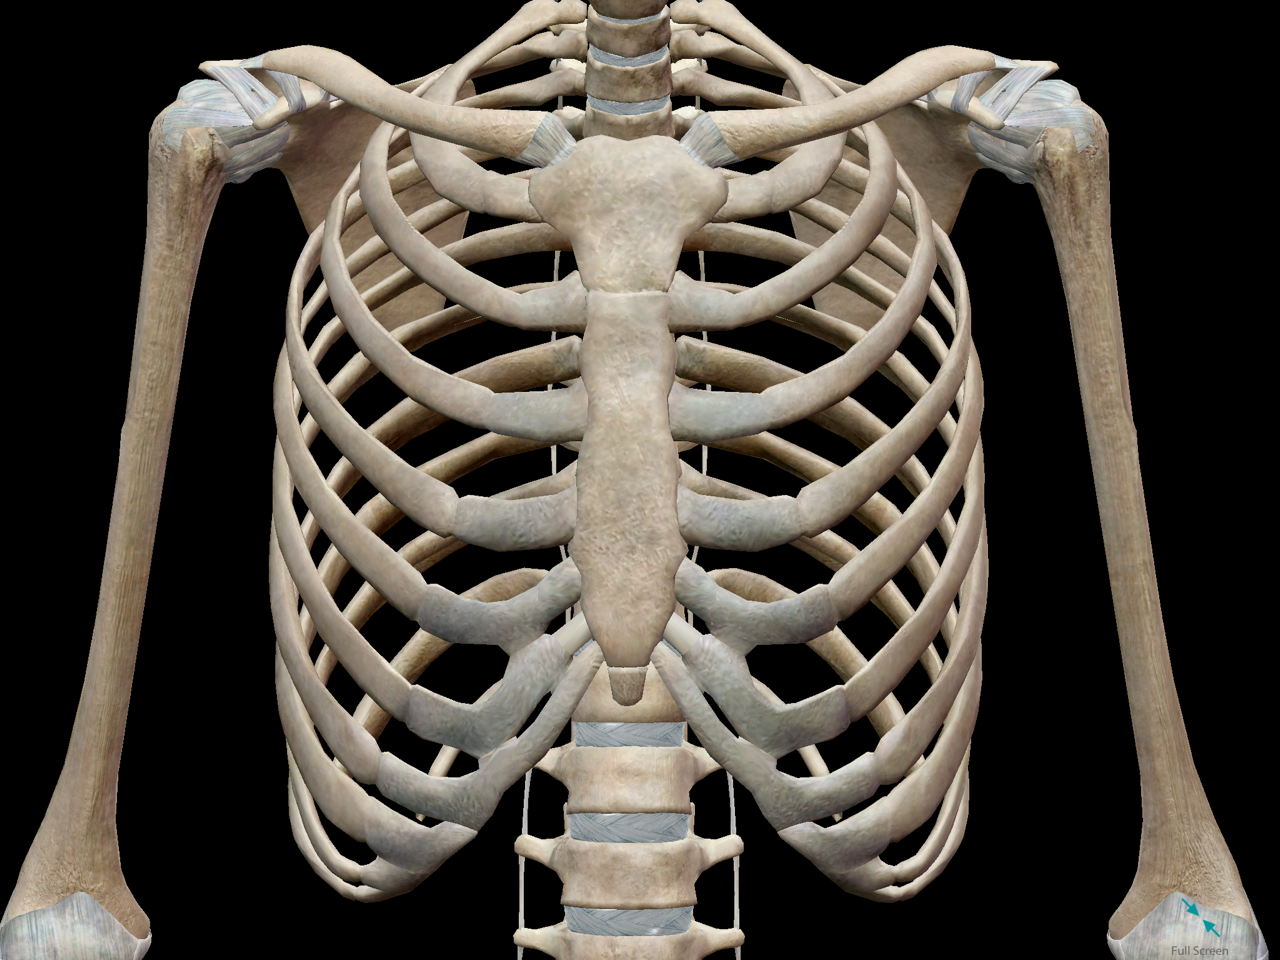 3D Skeletal System: Bones of the Thoracic Cage